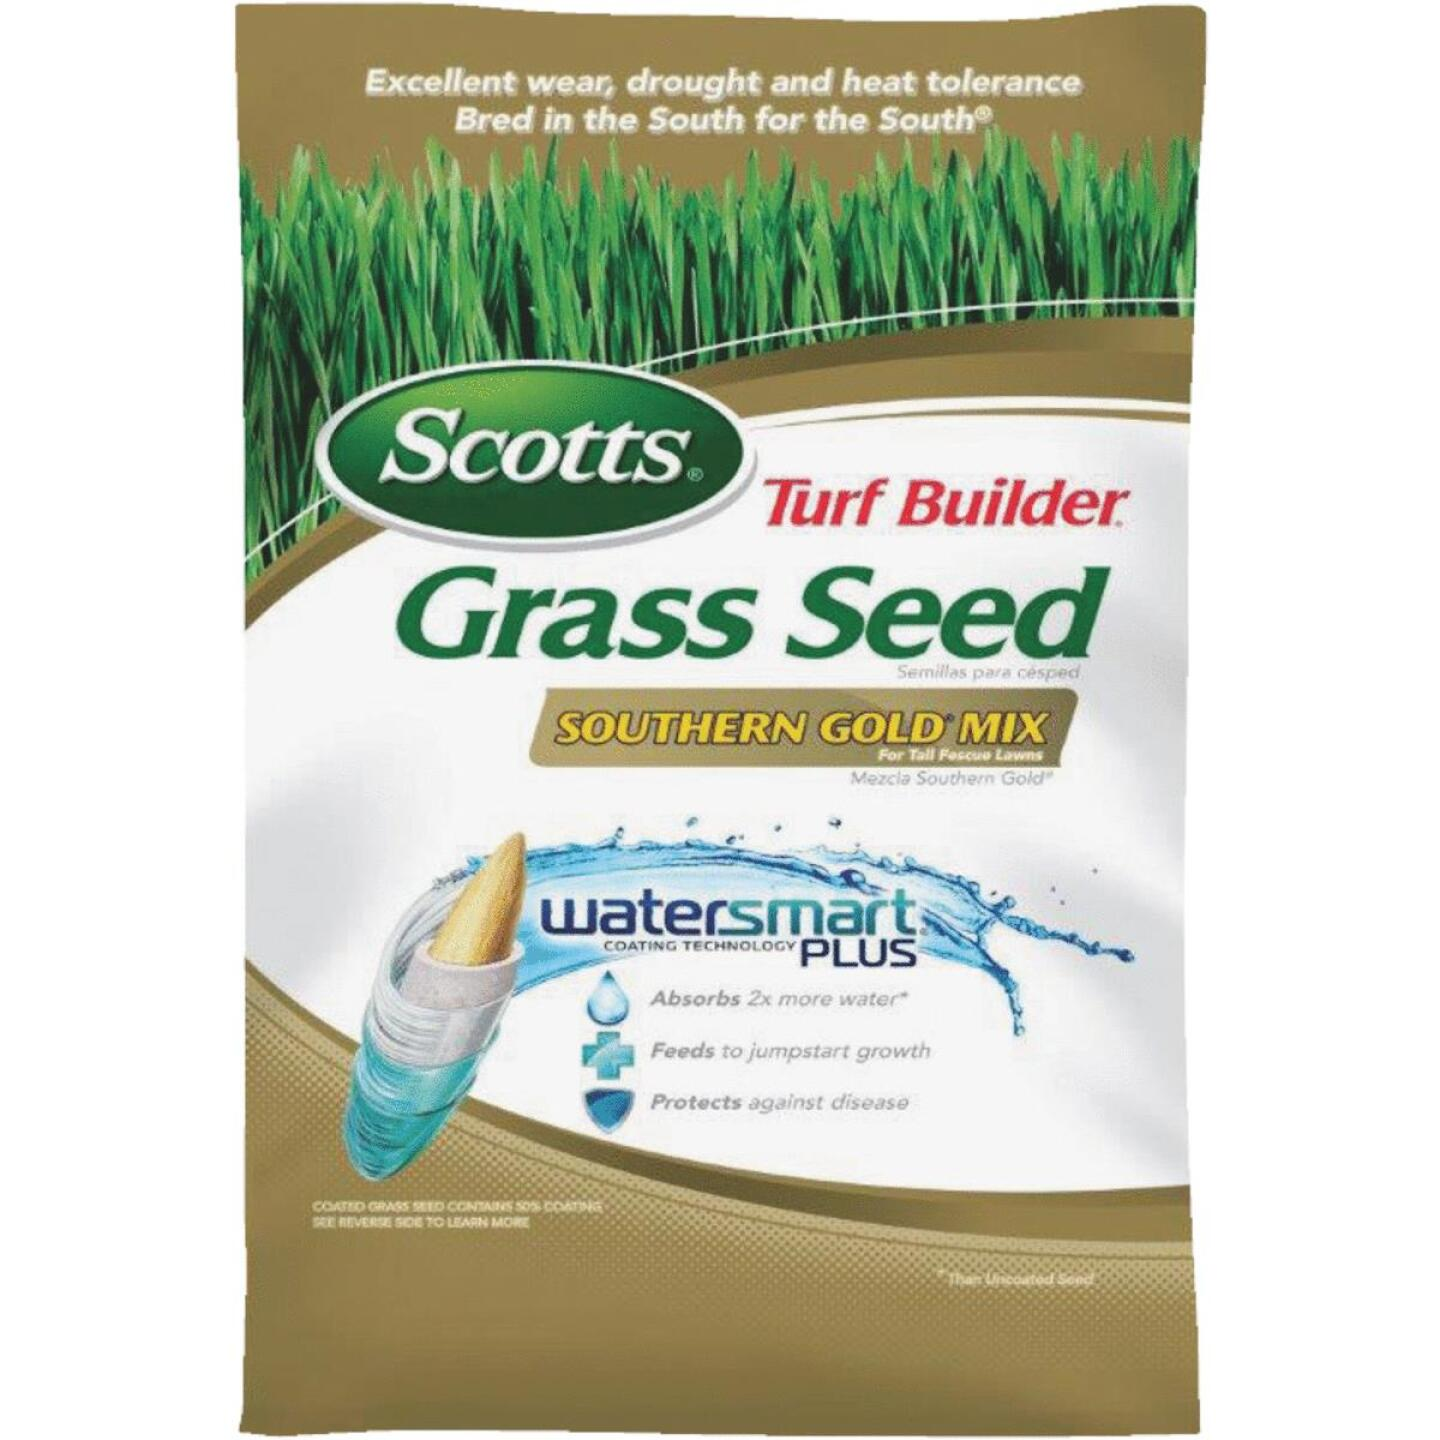 Scotts Turf Builder 3 Lb. Up To 750 Sq. Ft. Coverage Southern Gold Tall Fescue Grass Seed Image 1